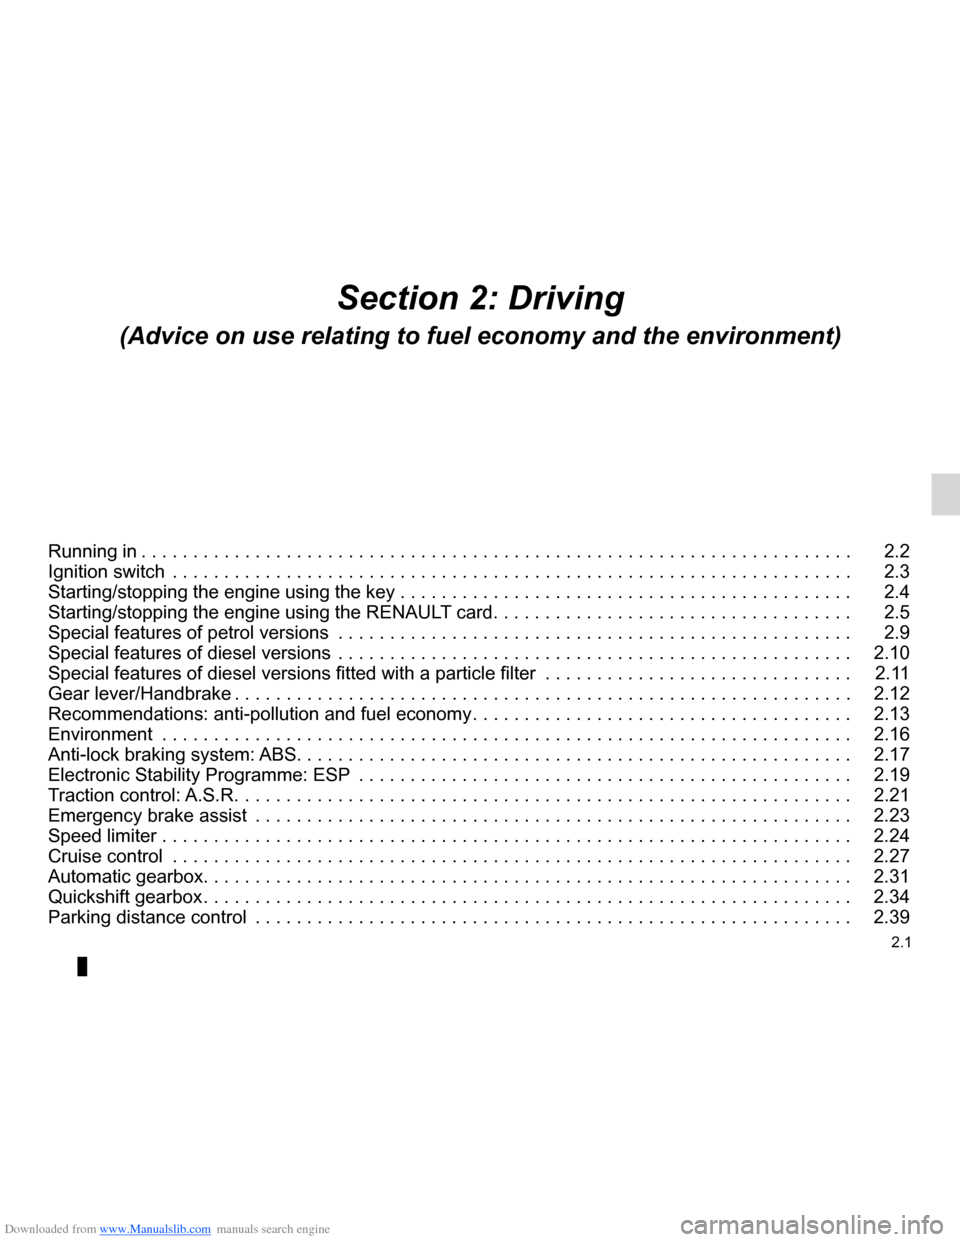 RENAULT CLIO 2012 X85 / 3.G Owners Manual, Page 95